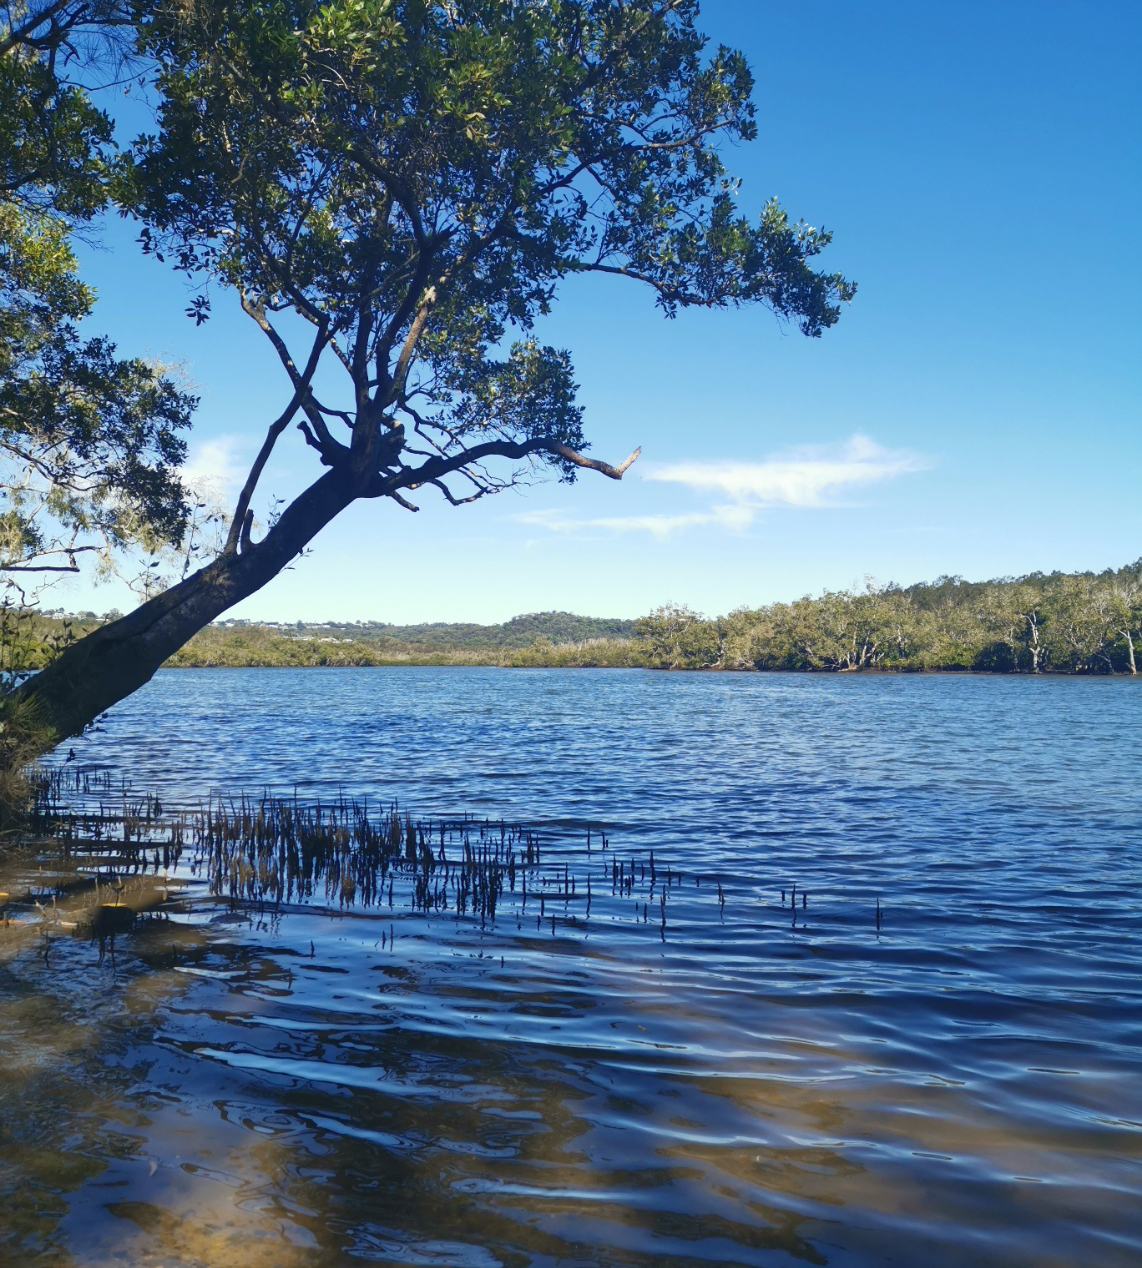 Trail Image for Maroochy River Canoe Trail: Eudlo Creek Paddle